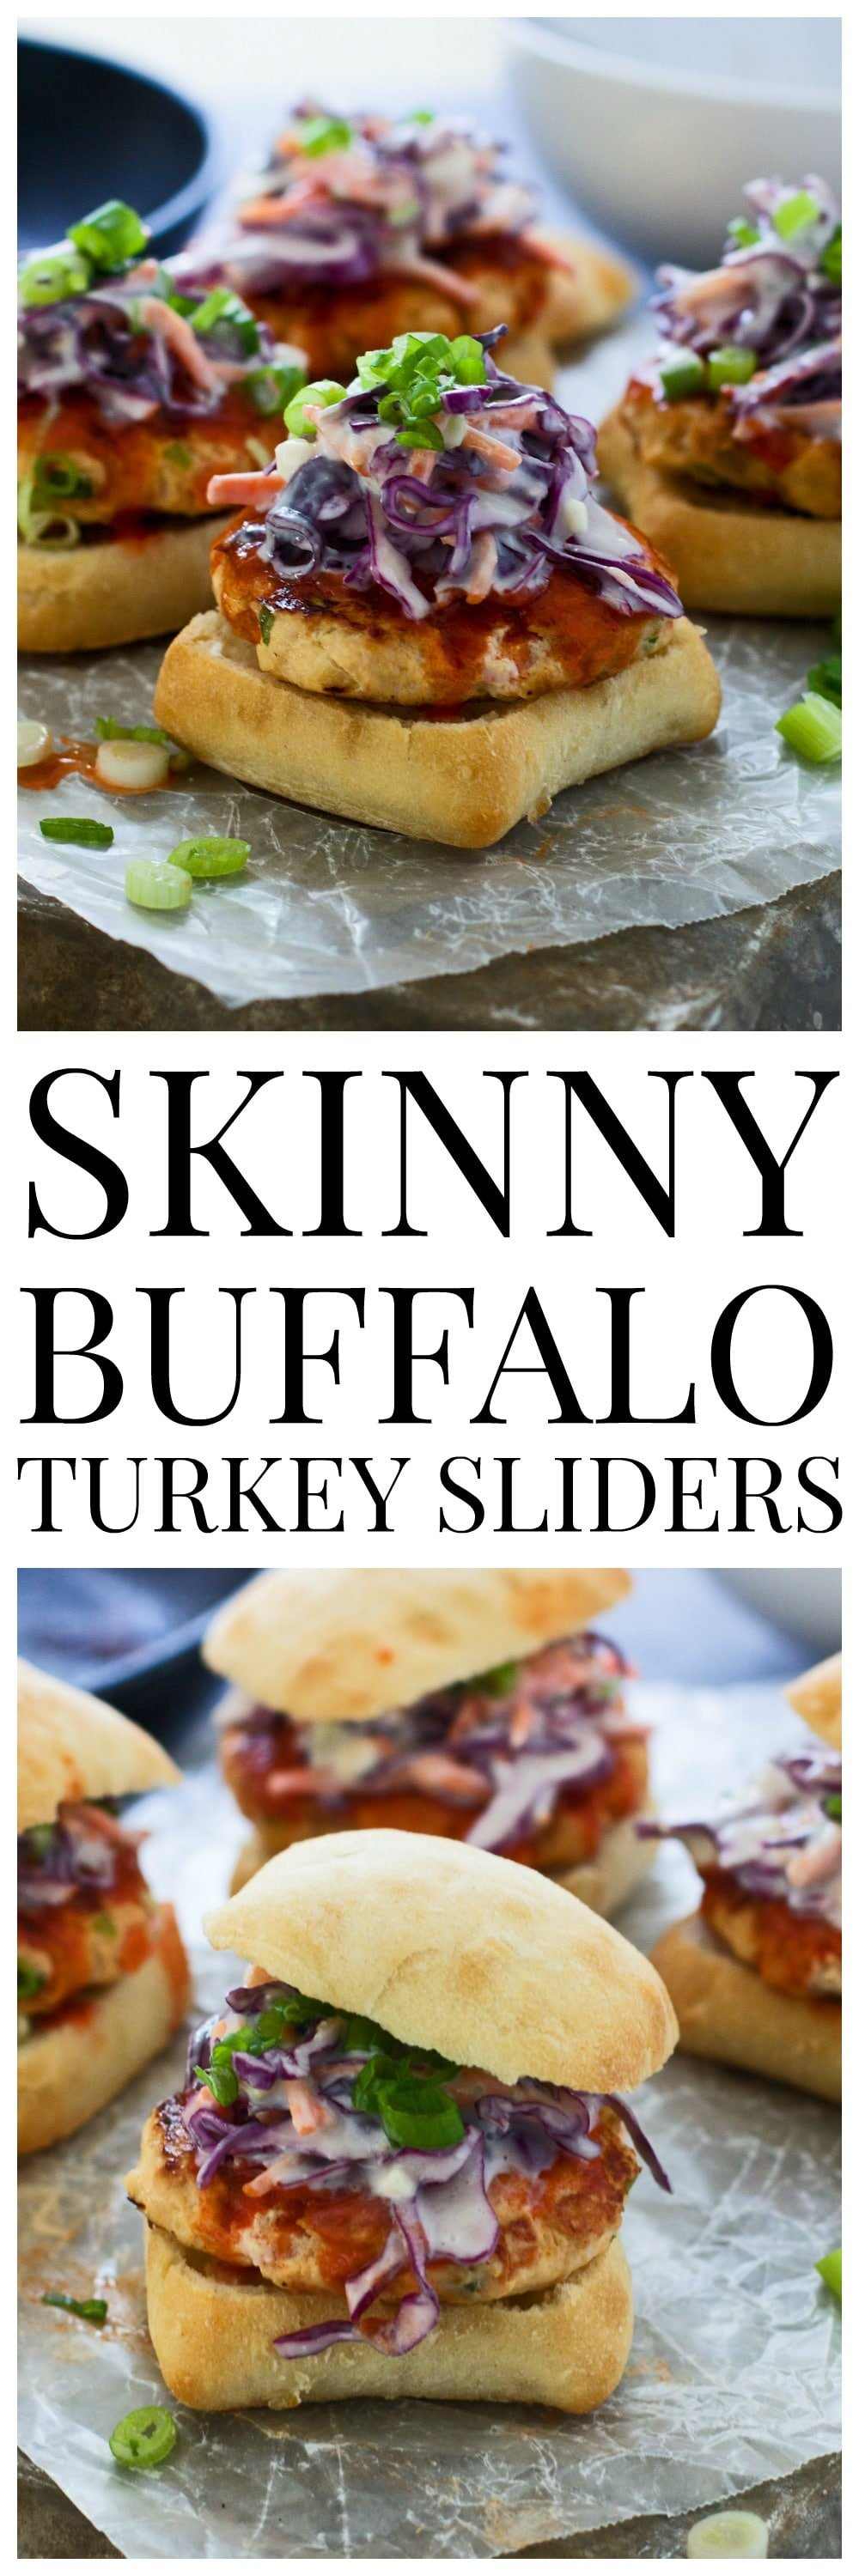 Skinny Buffalo Turkey Sliders - So much flavor, and super healthy!